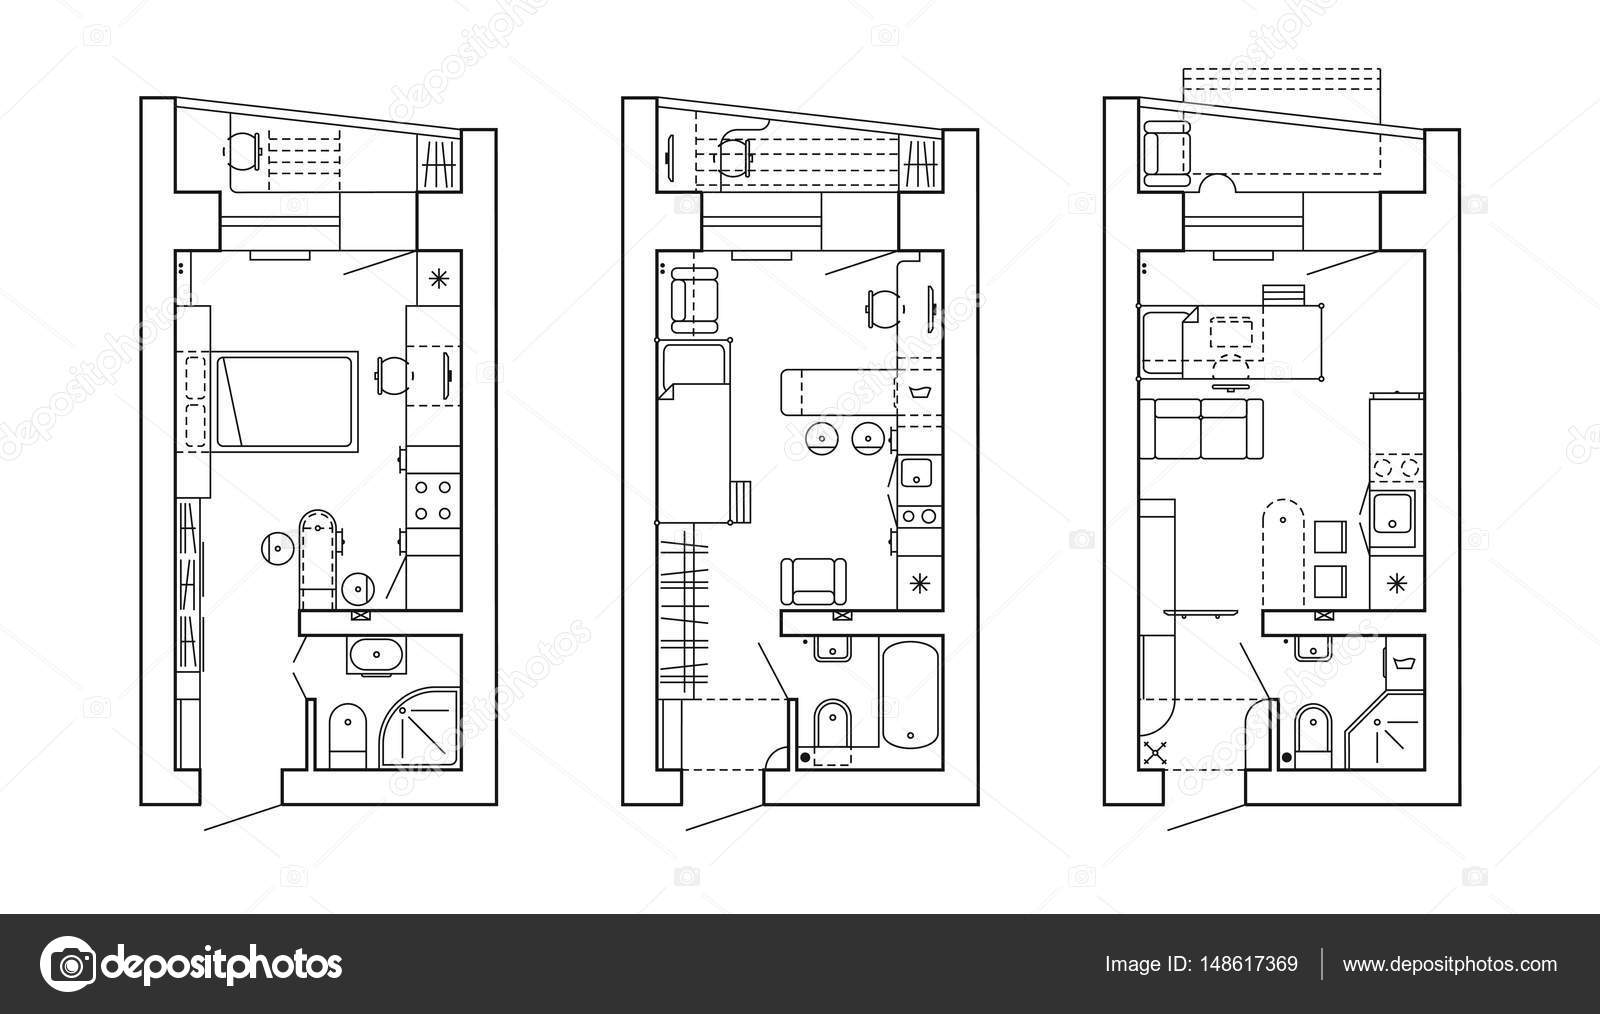 Plan de dessin architecture d 39 une maison for Dessin plan architecture